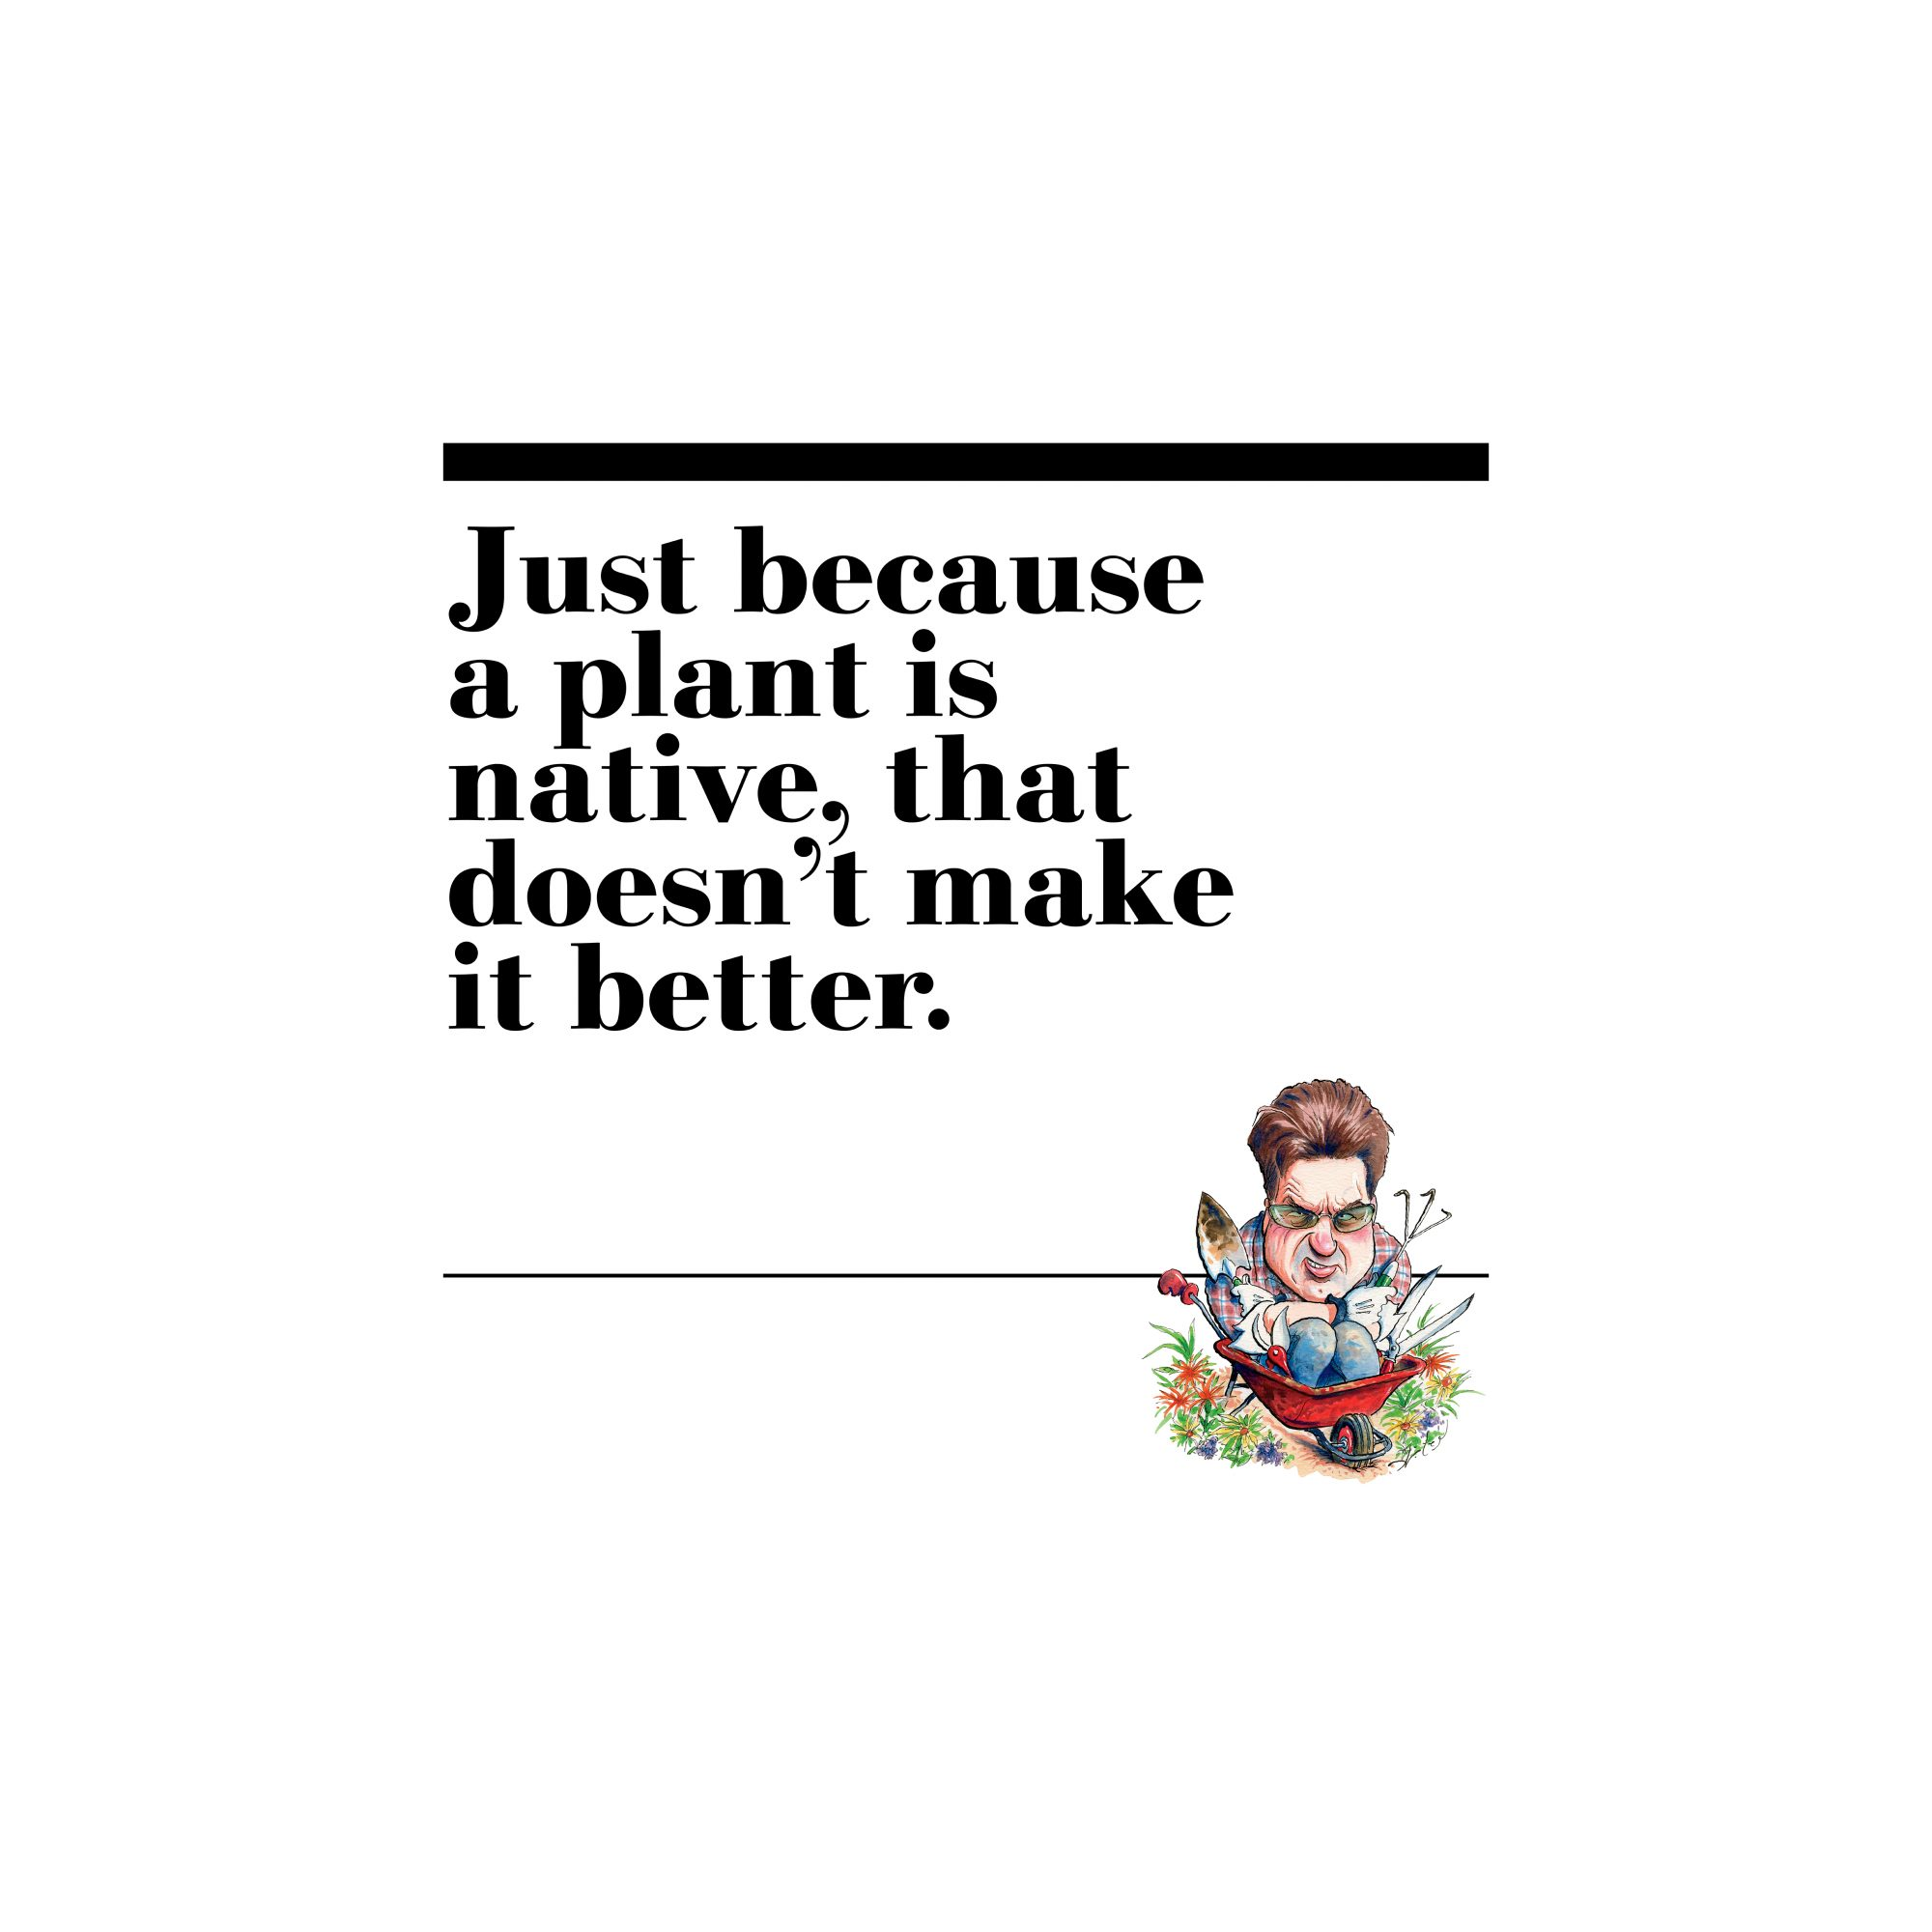 42. Just because a plant is native, that doesn't make it better.